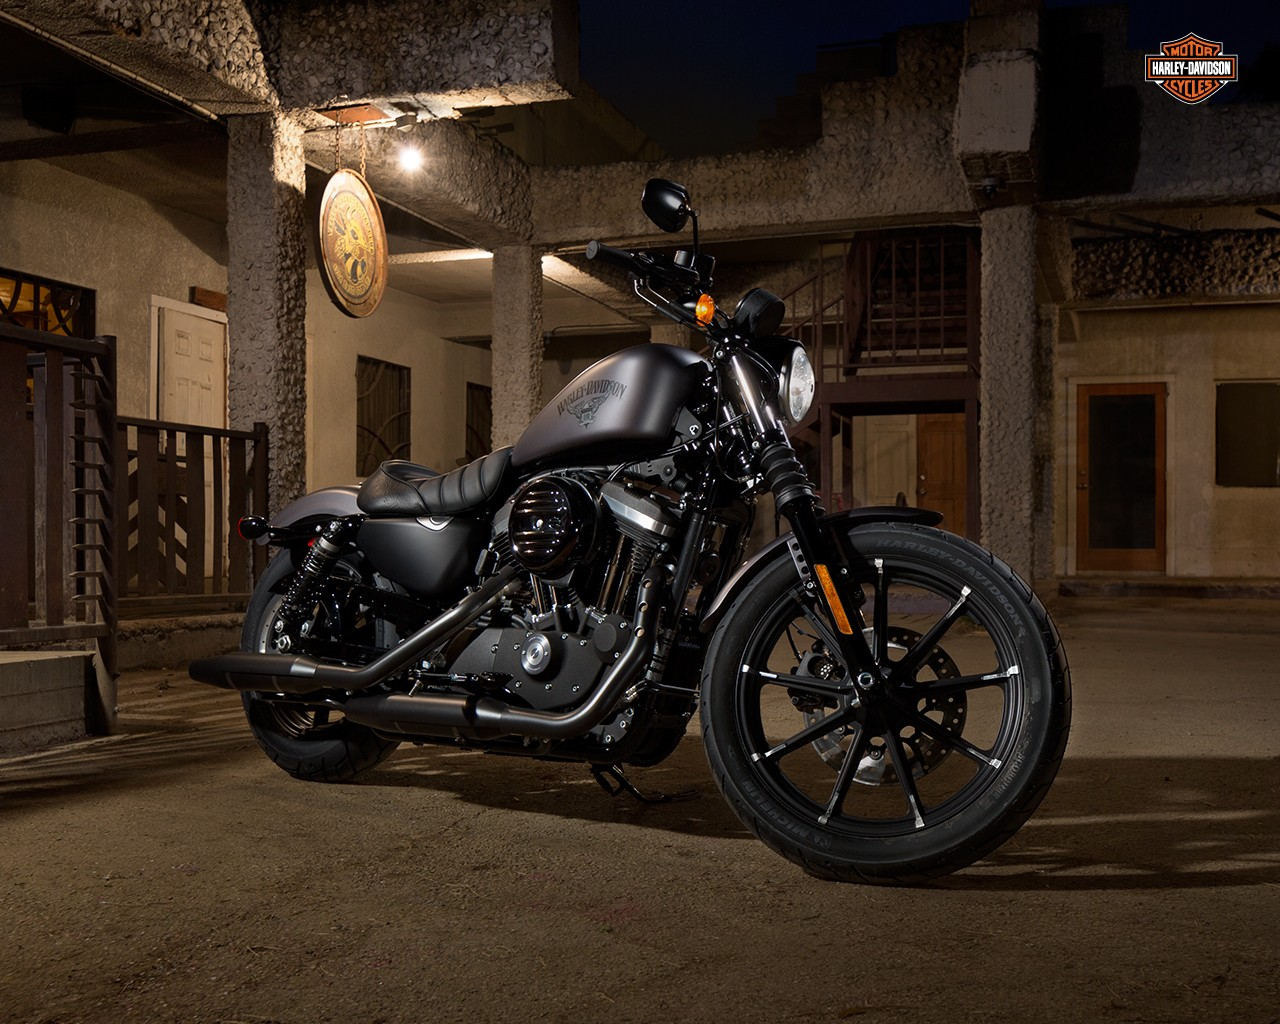 2016 harley davidson iron 883 receives suspension upgrades. Black Bedroom Furniture Sets. Home Design Ideas